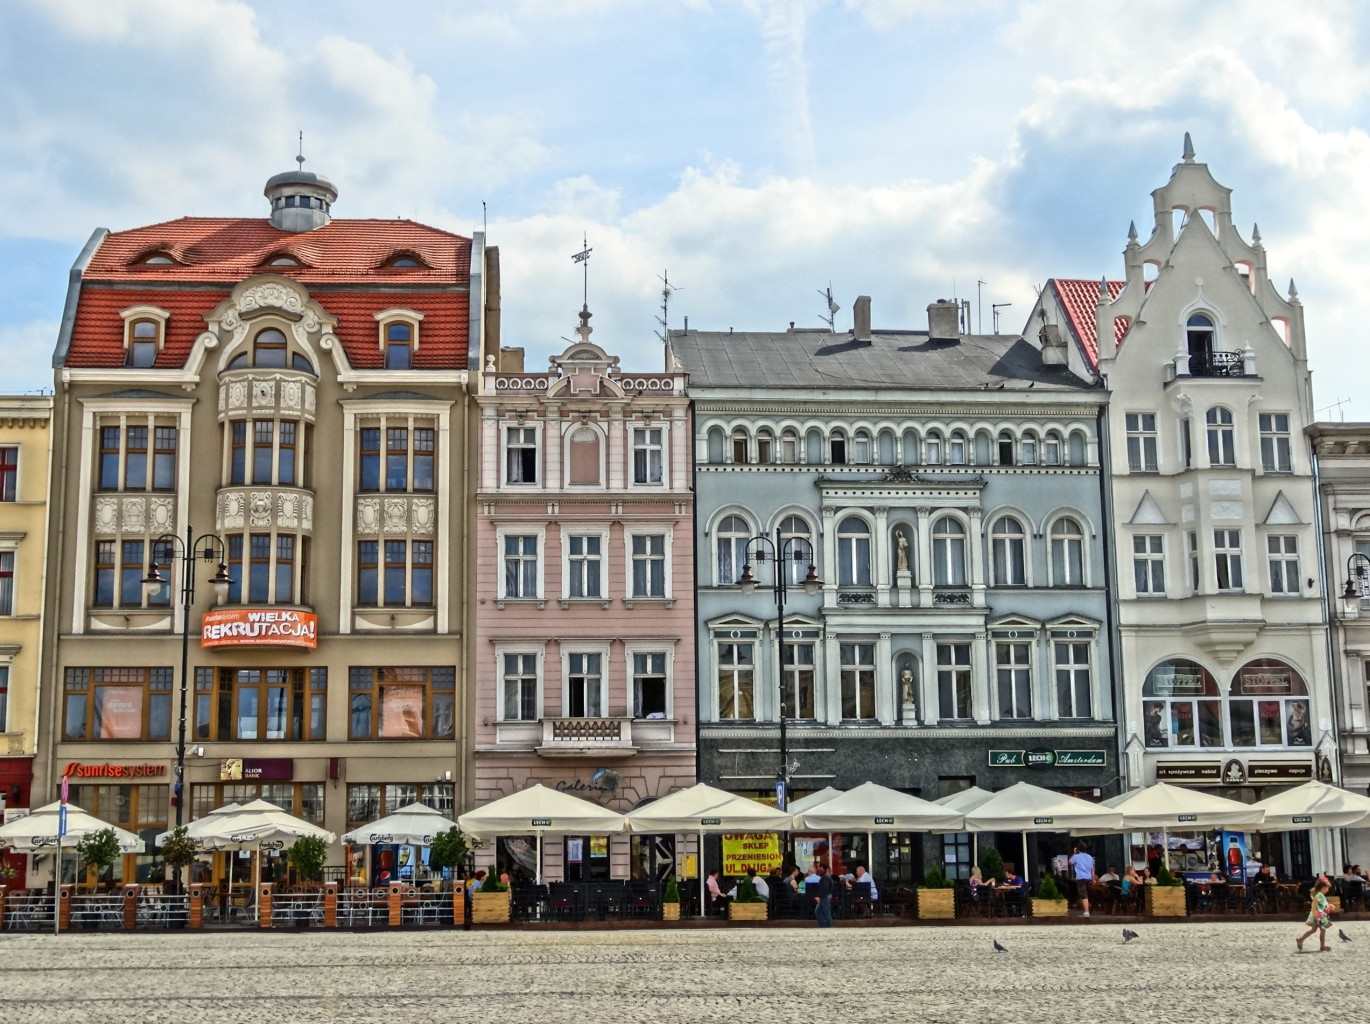 Restorans In The Market Square Building Bydgoszcz Free Image